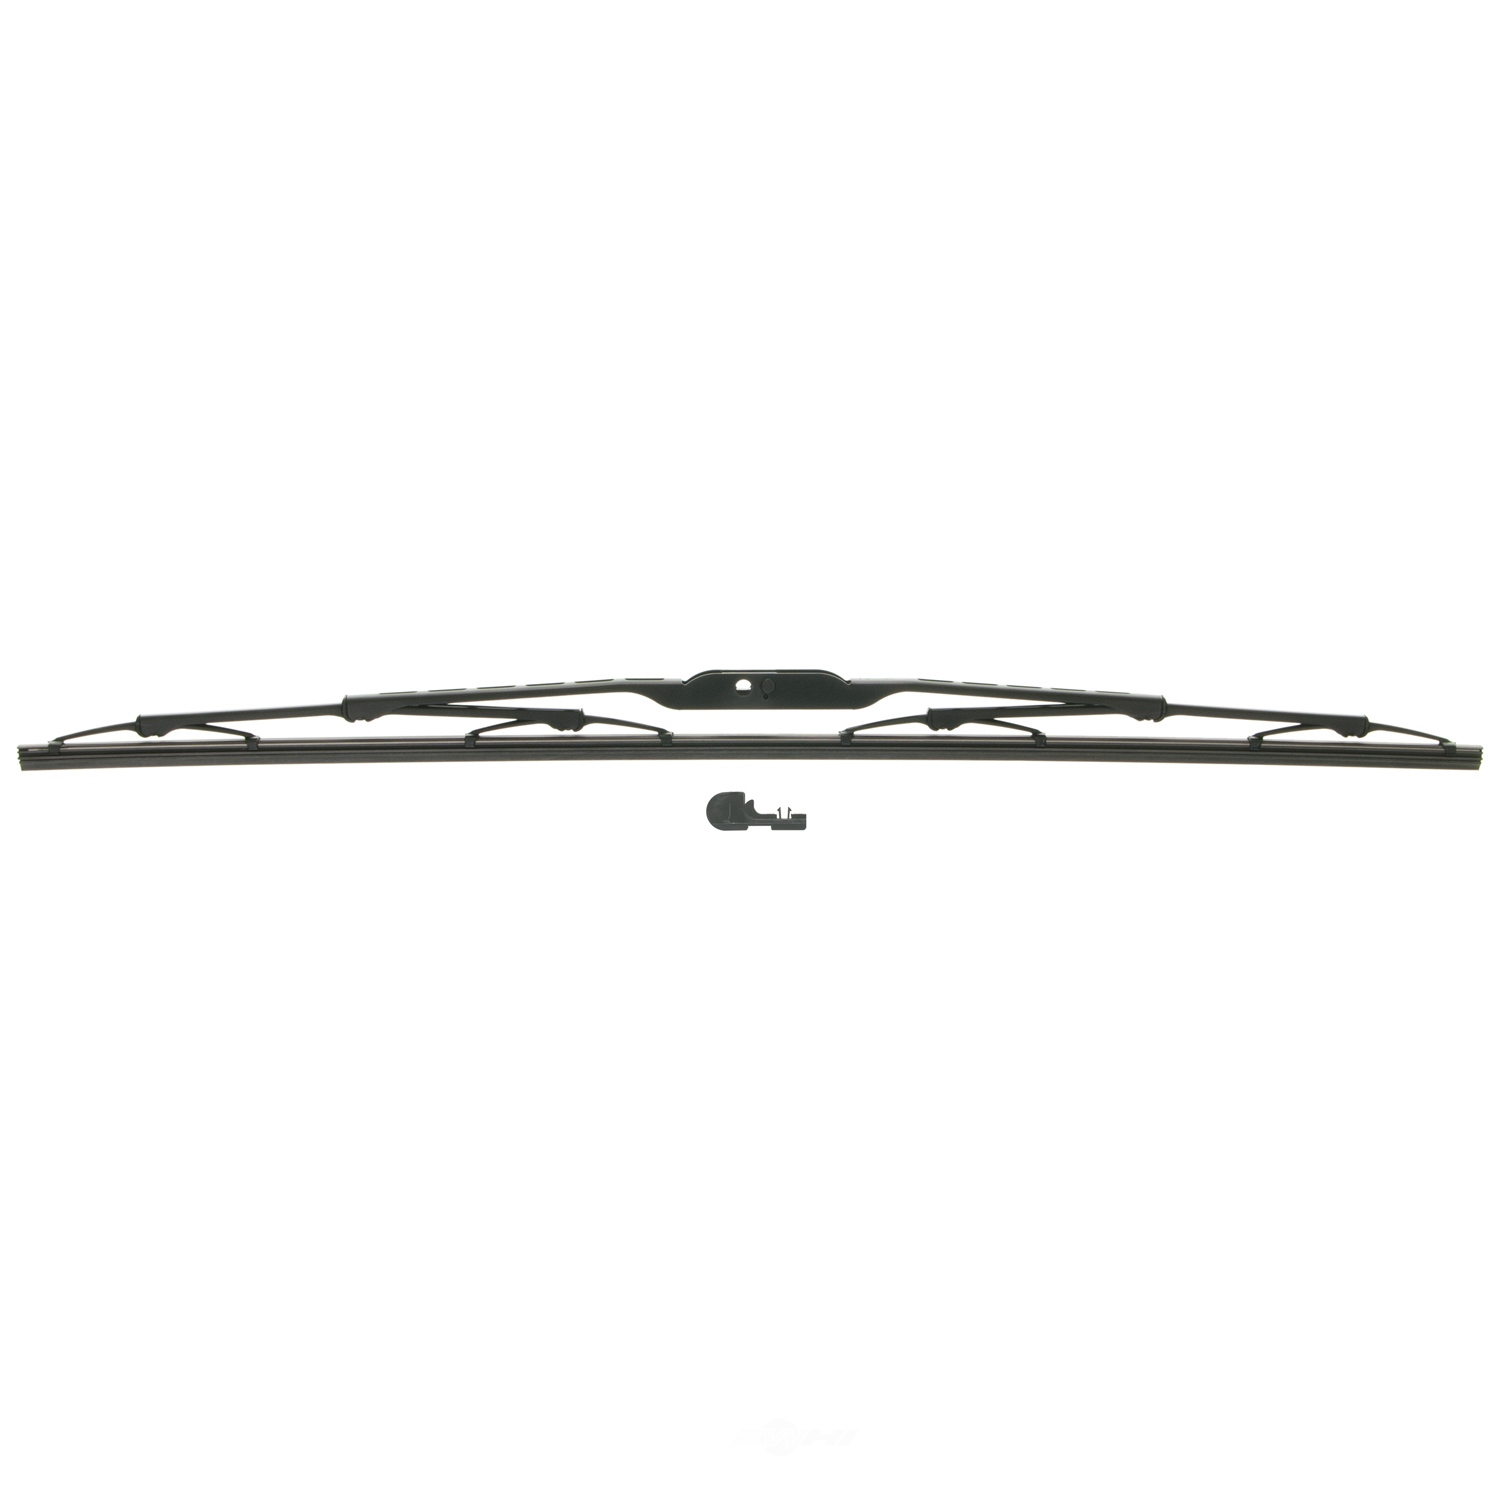 ANCO WIPER PRODUCTS - Aerovantage Wiper Blade (Front Left) - ANC 91-24